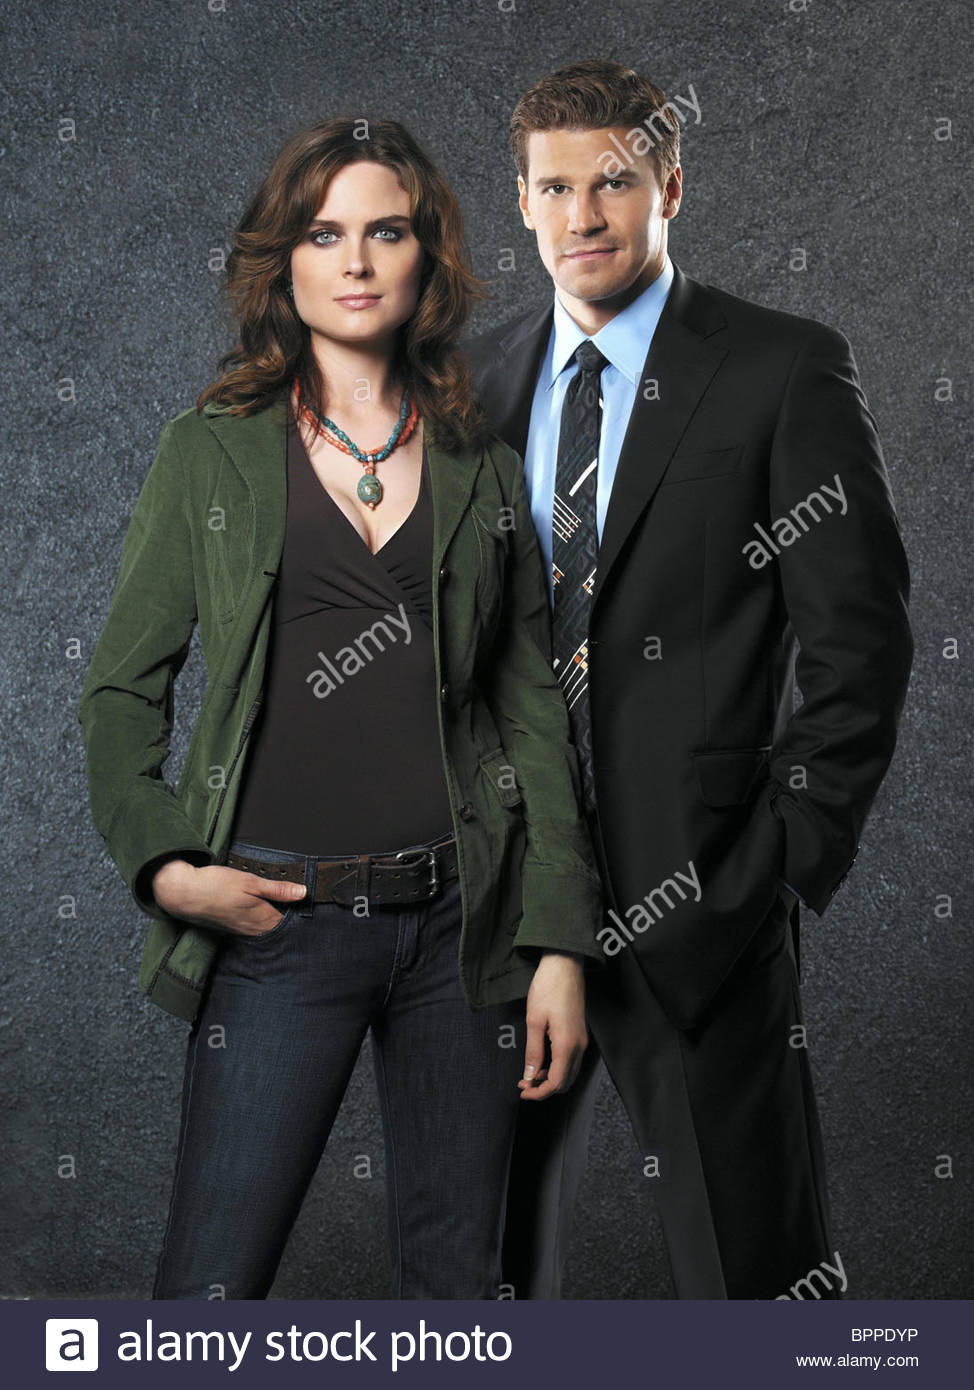 EMILY DESCHANEL & DAVID BOREANAZ BONES : SEASON 1 (2005 ...